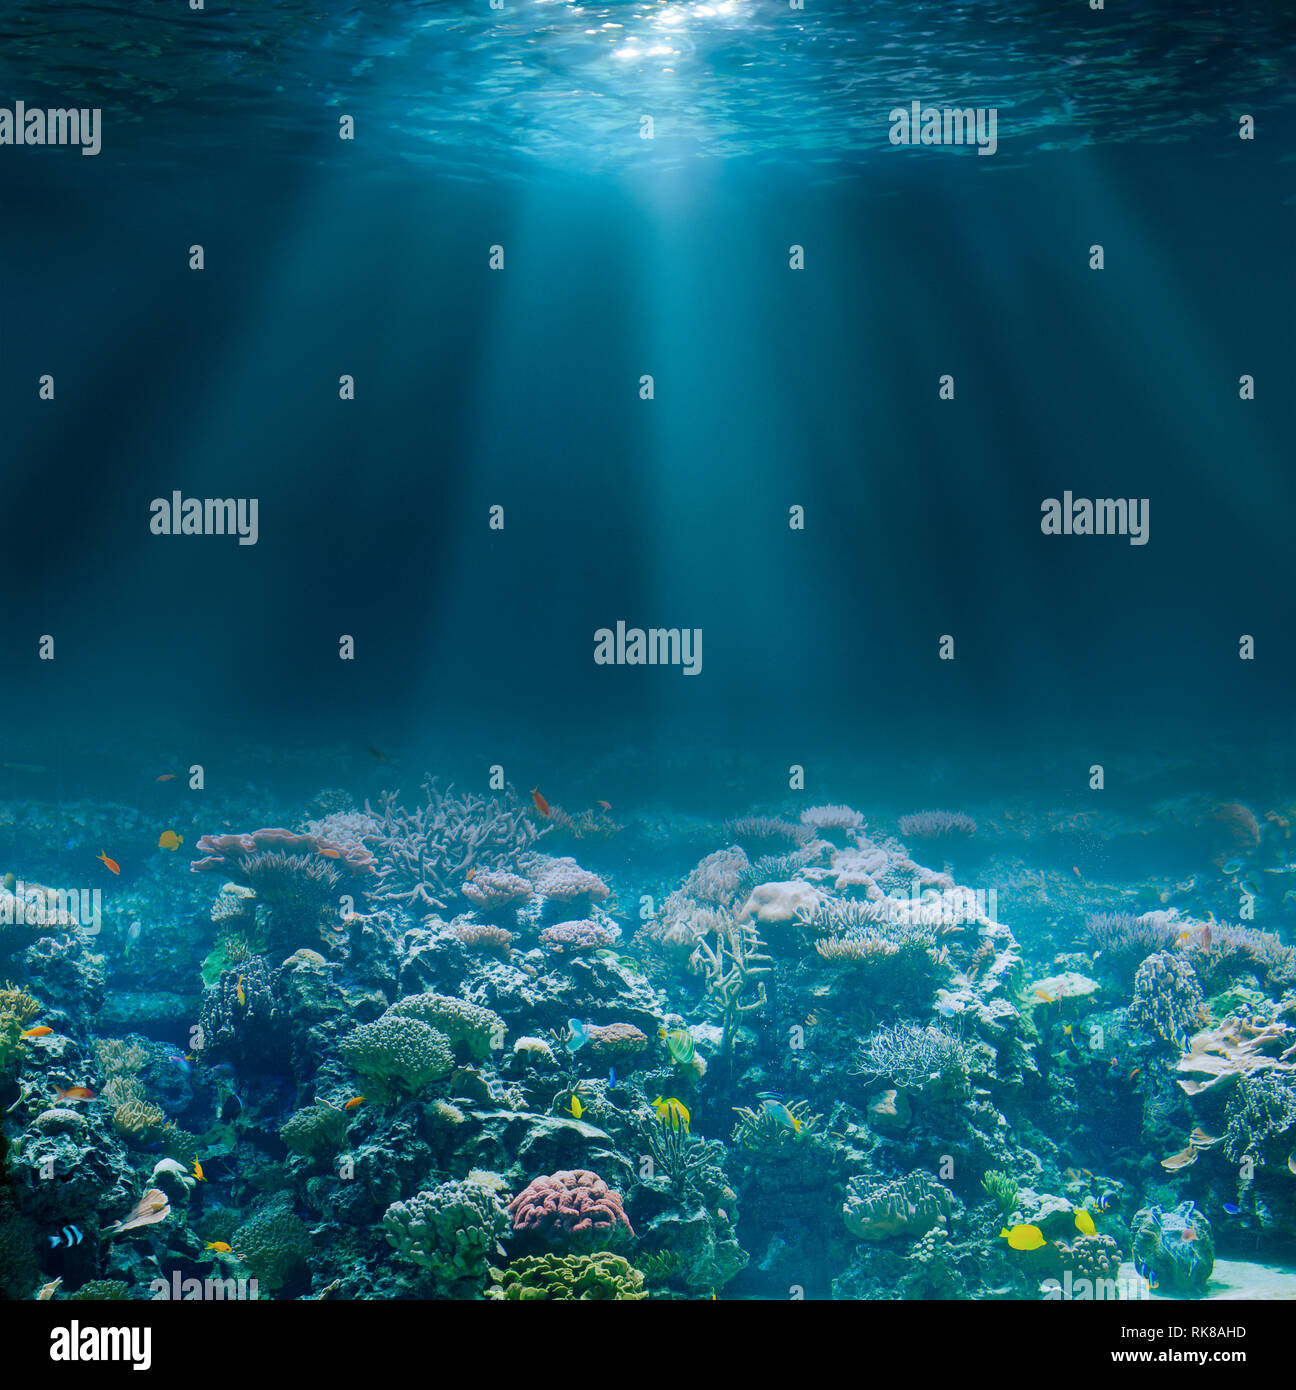 Sea or ocean seabed with coral reef. Underwater view. Stock Photo